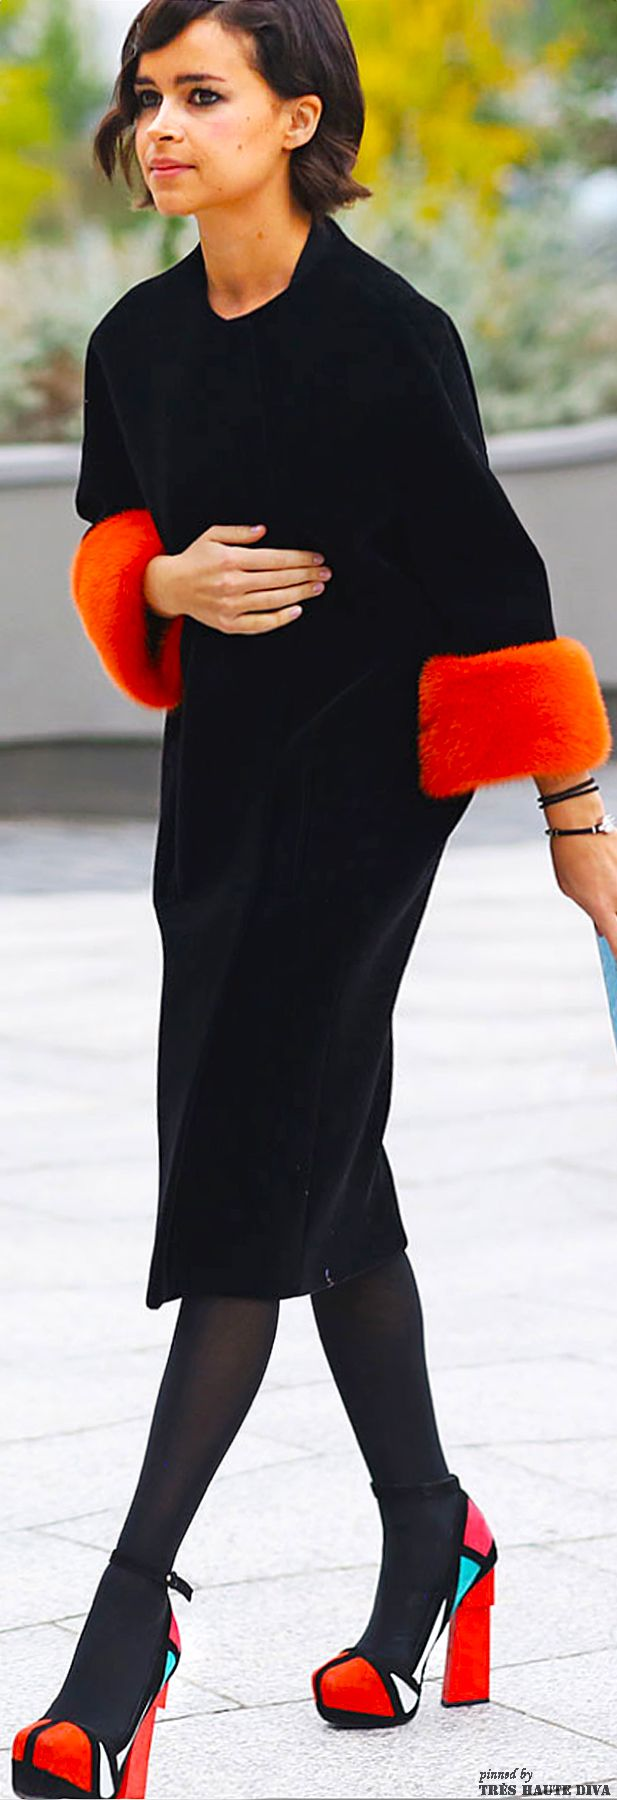 Whys she wearing her floats on the streets? Nice shoes though.   Mirodlava Duma in Aperlai shoes at Paris Fashion Week Spring 2014